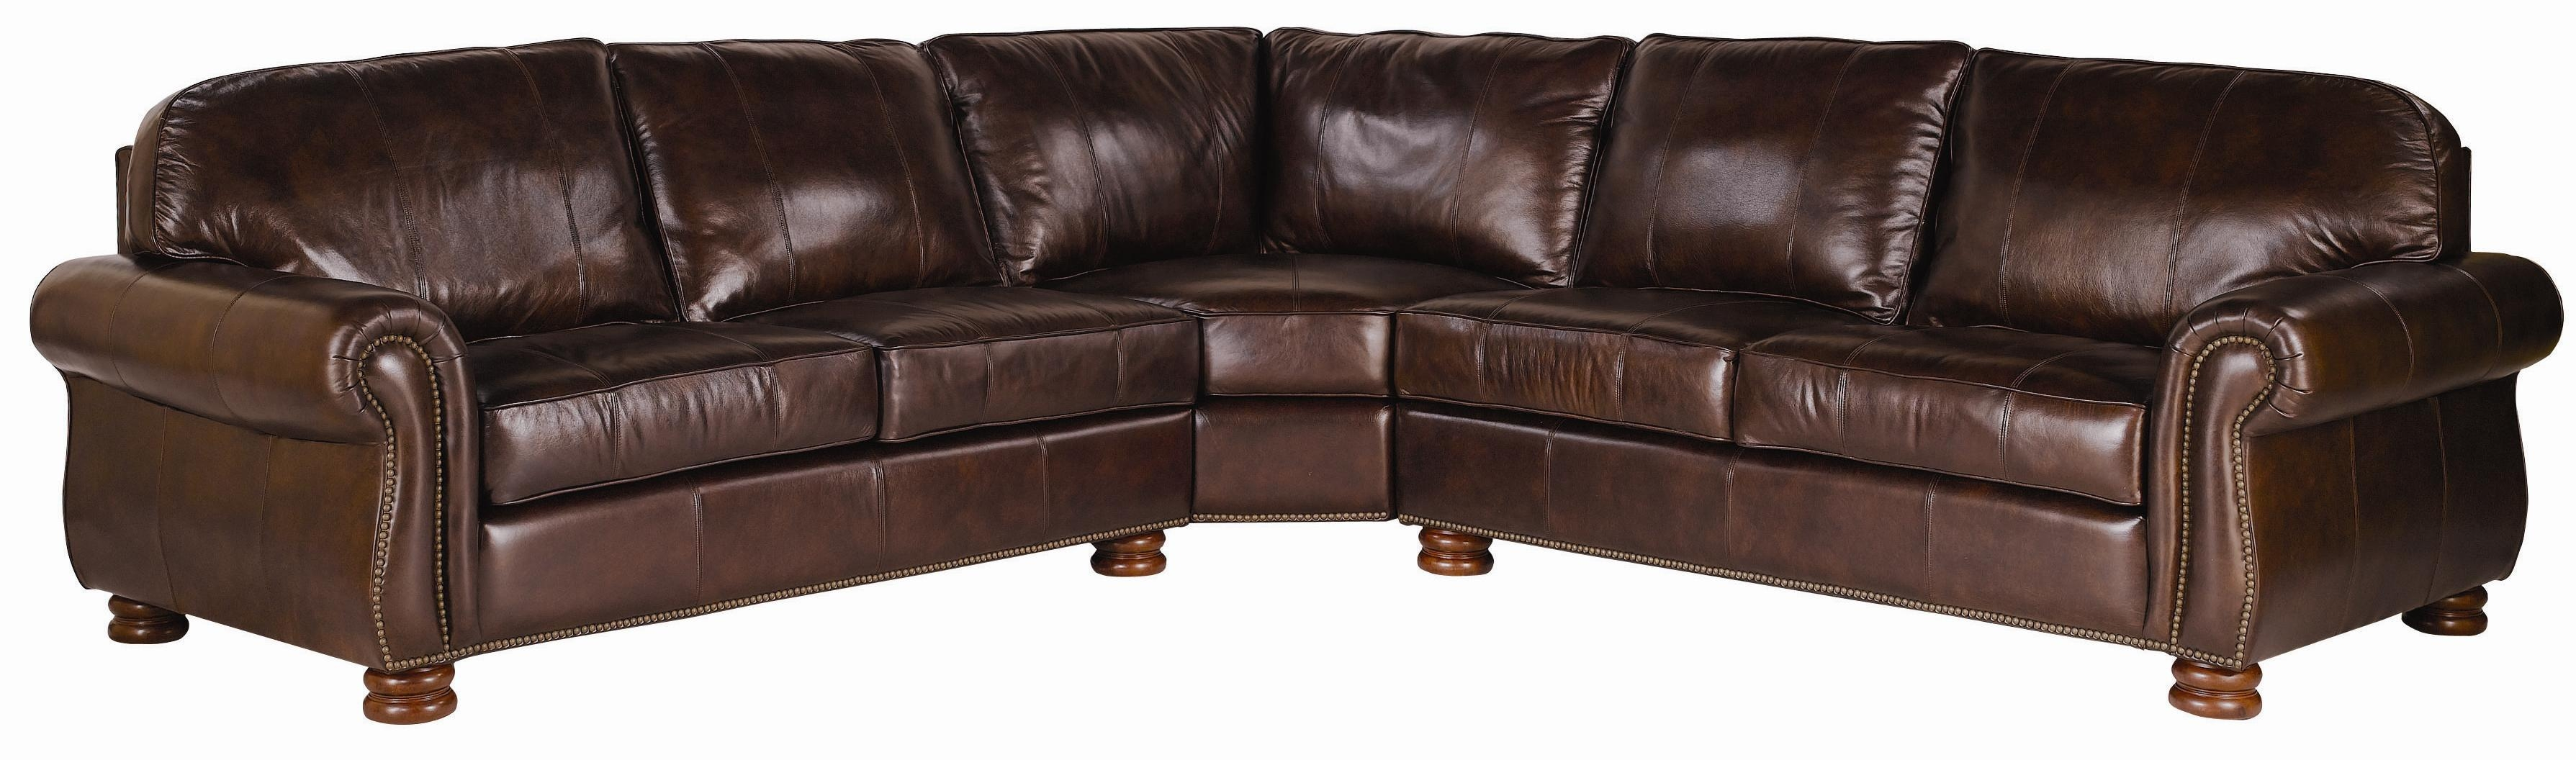 Thomasville Leather Choices Benjamin Select 3 Piece Regarding Sectionals Image